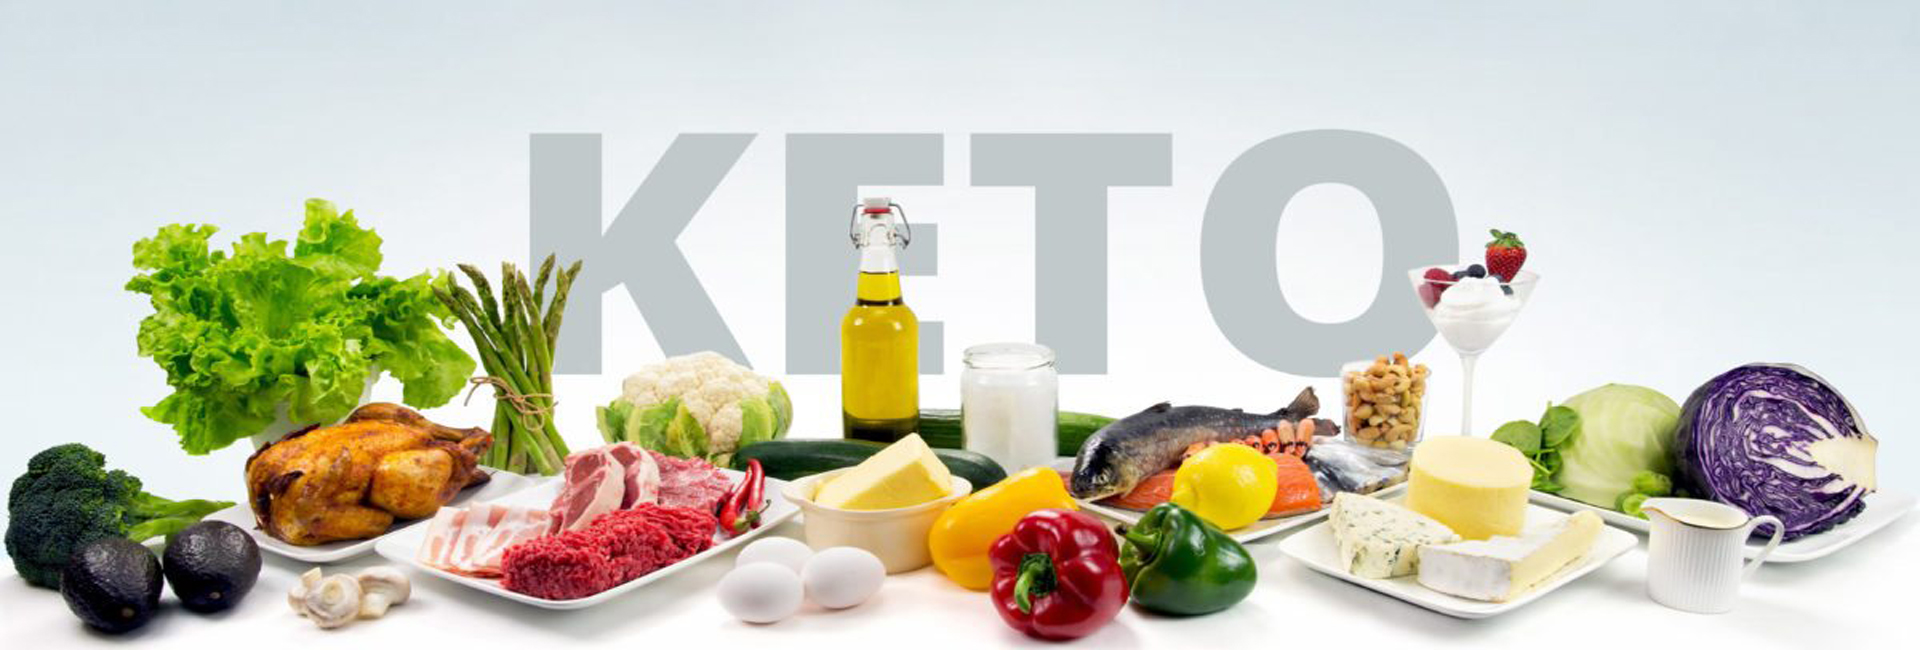 Keto Diet Plan In Madinat Zayed